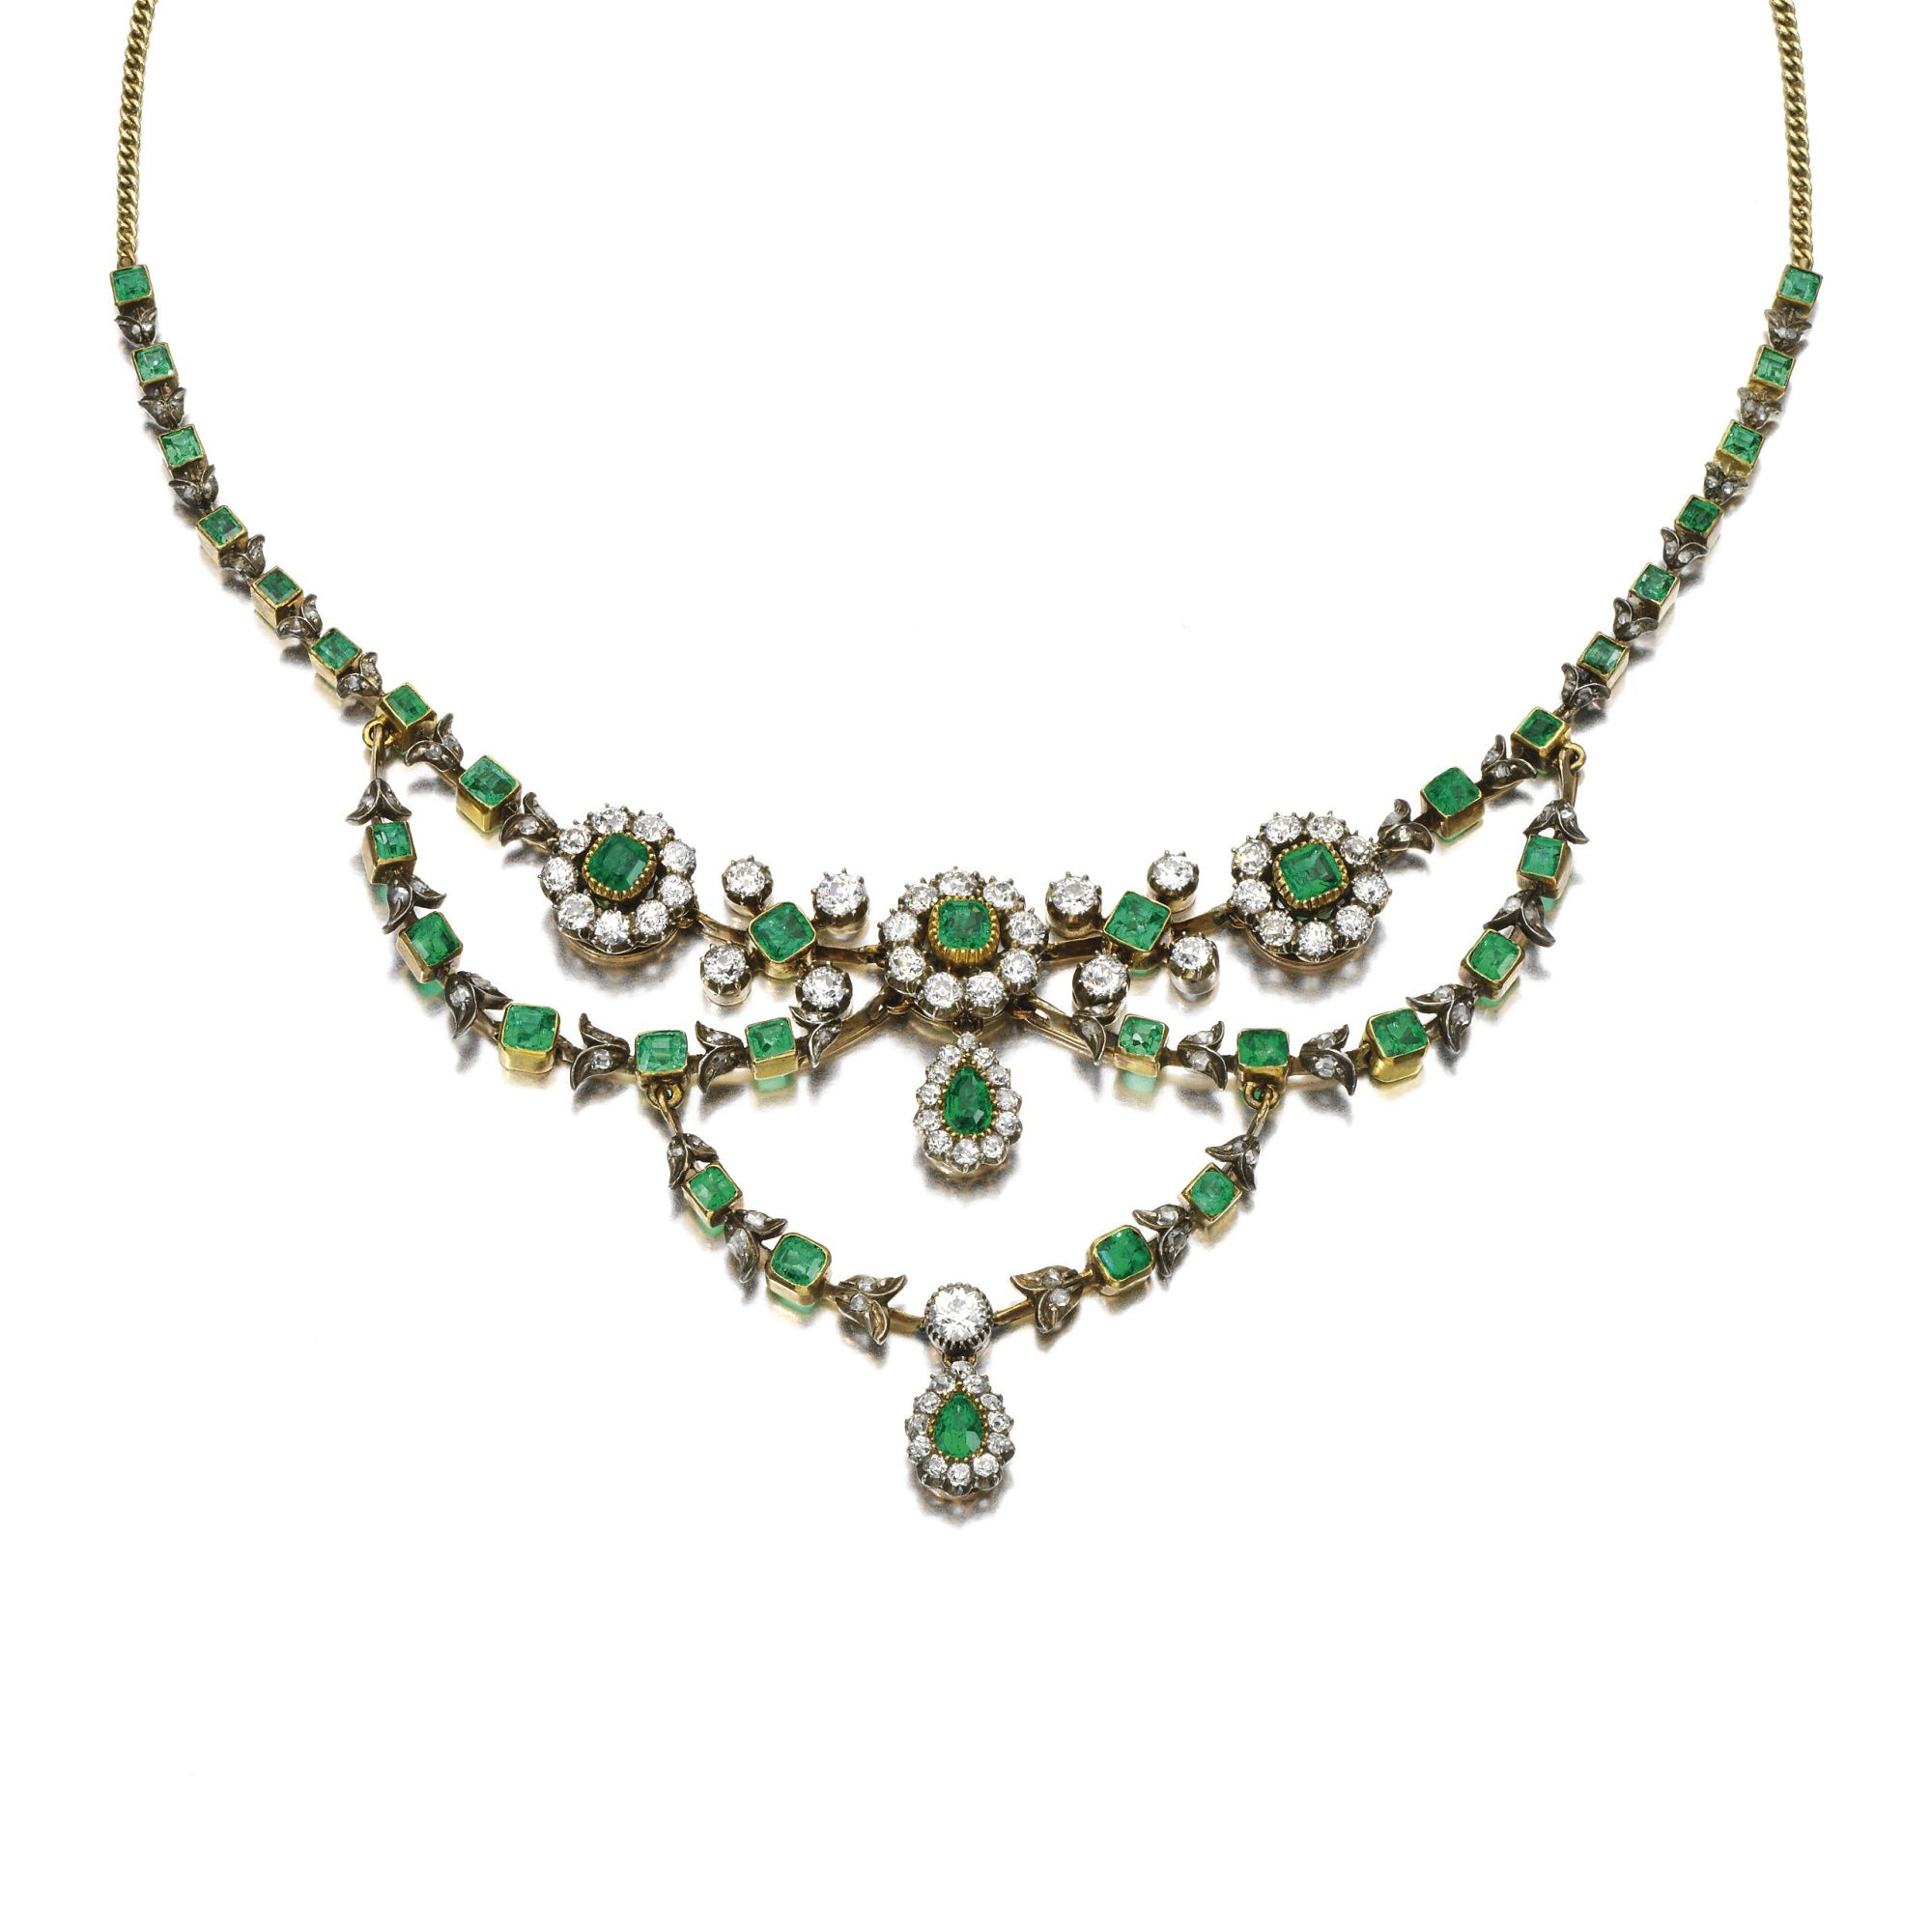 Emerald and diamond necklace circa set with stepcut emeralds